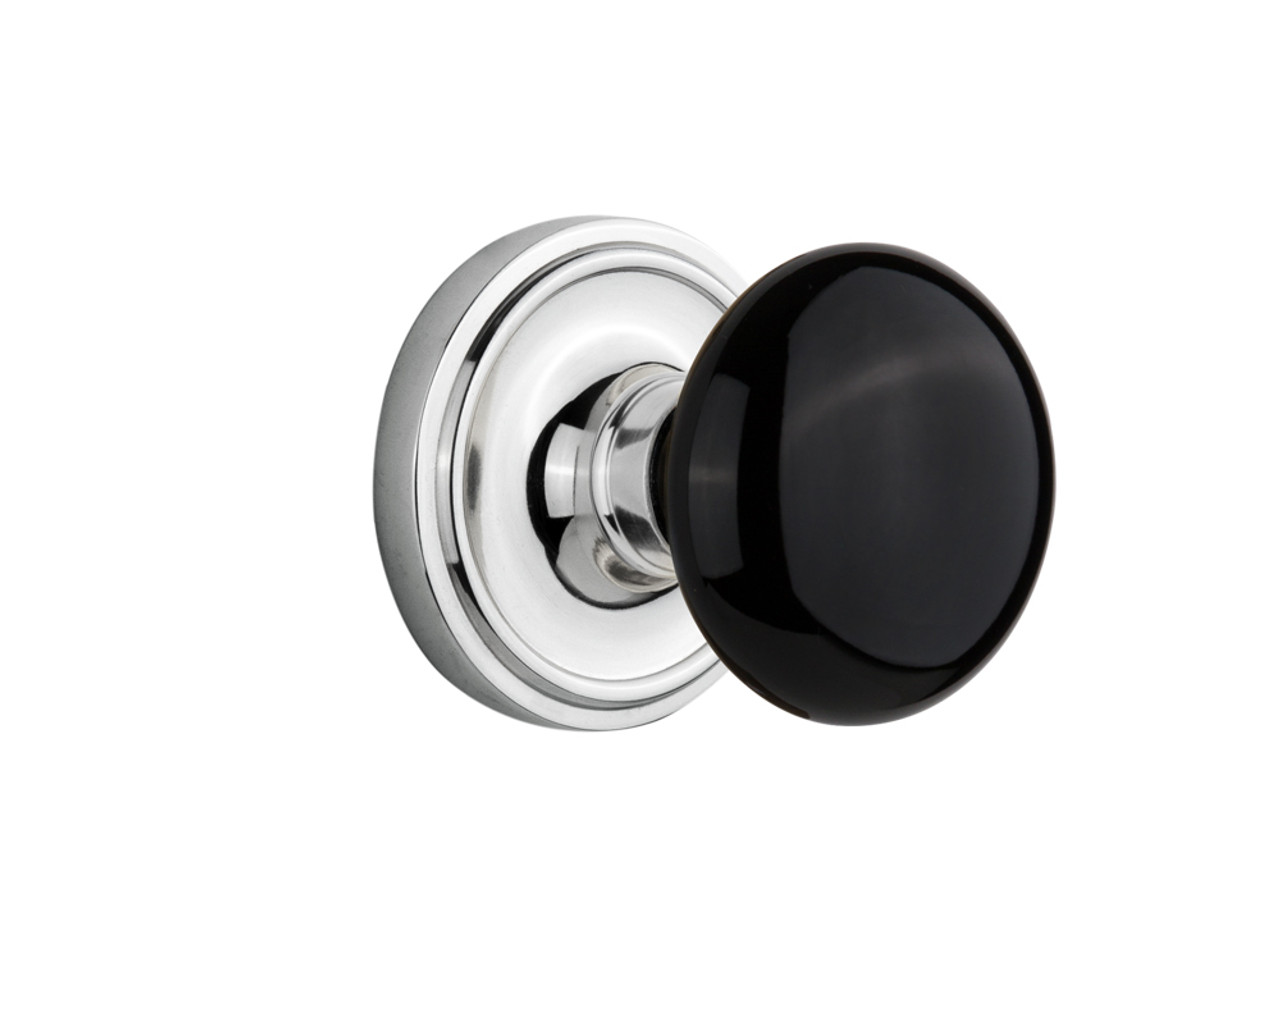 Nostalgic Warehouse Classic Plate Interior Mortise Black Porcelain Door Knob in Bright Chrome (NW-710386)